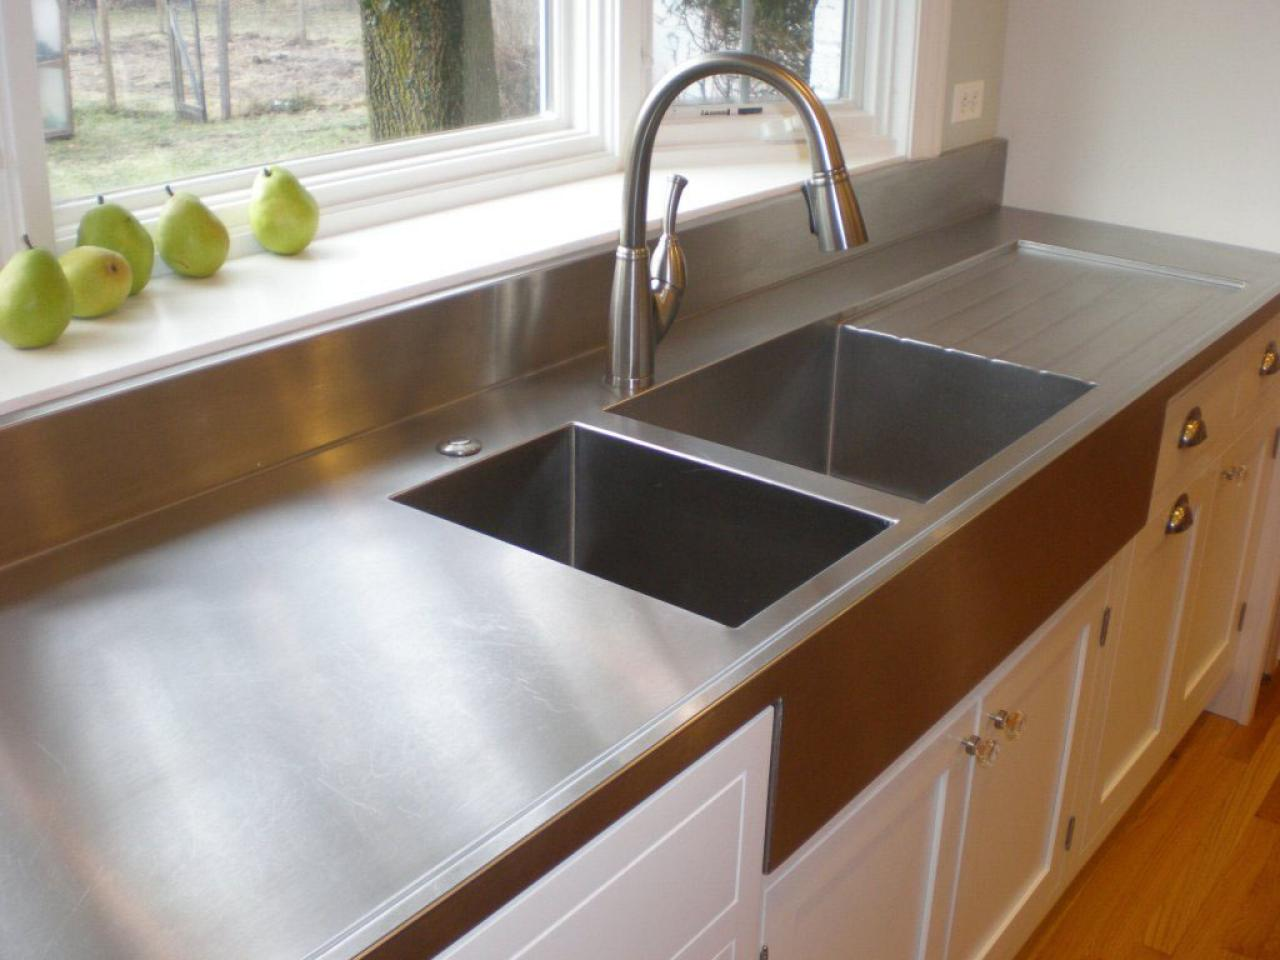 Choosing countertops stainless steel diy for Style kitchen countertops